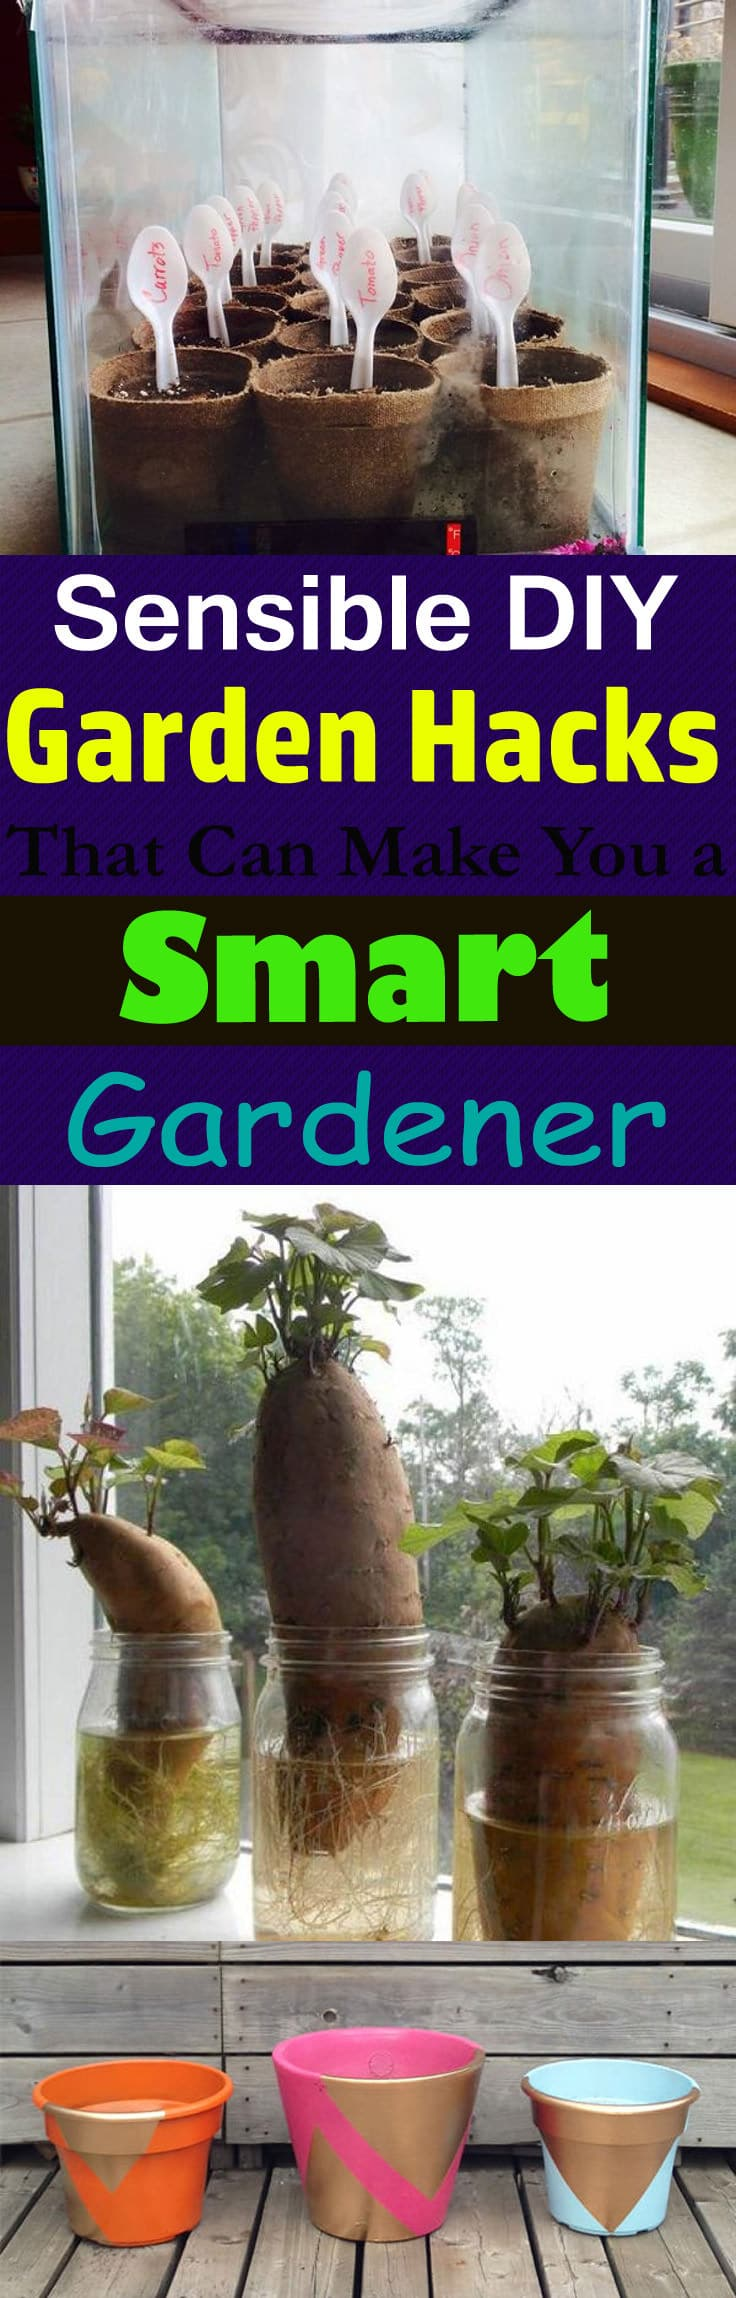 Must take a look at these gardening hacks and DIY ideas to make gardening easier and more fun!